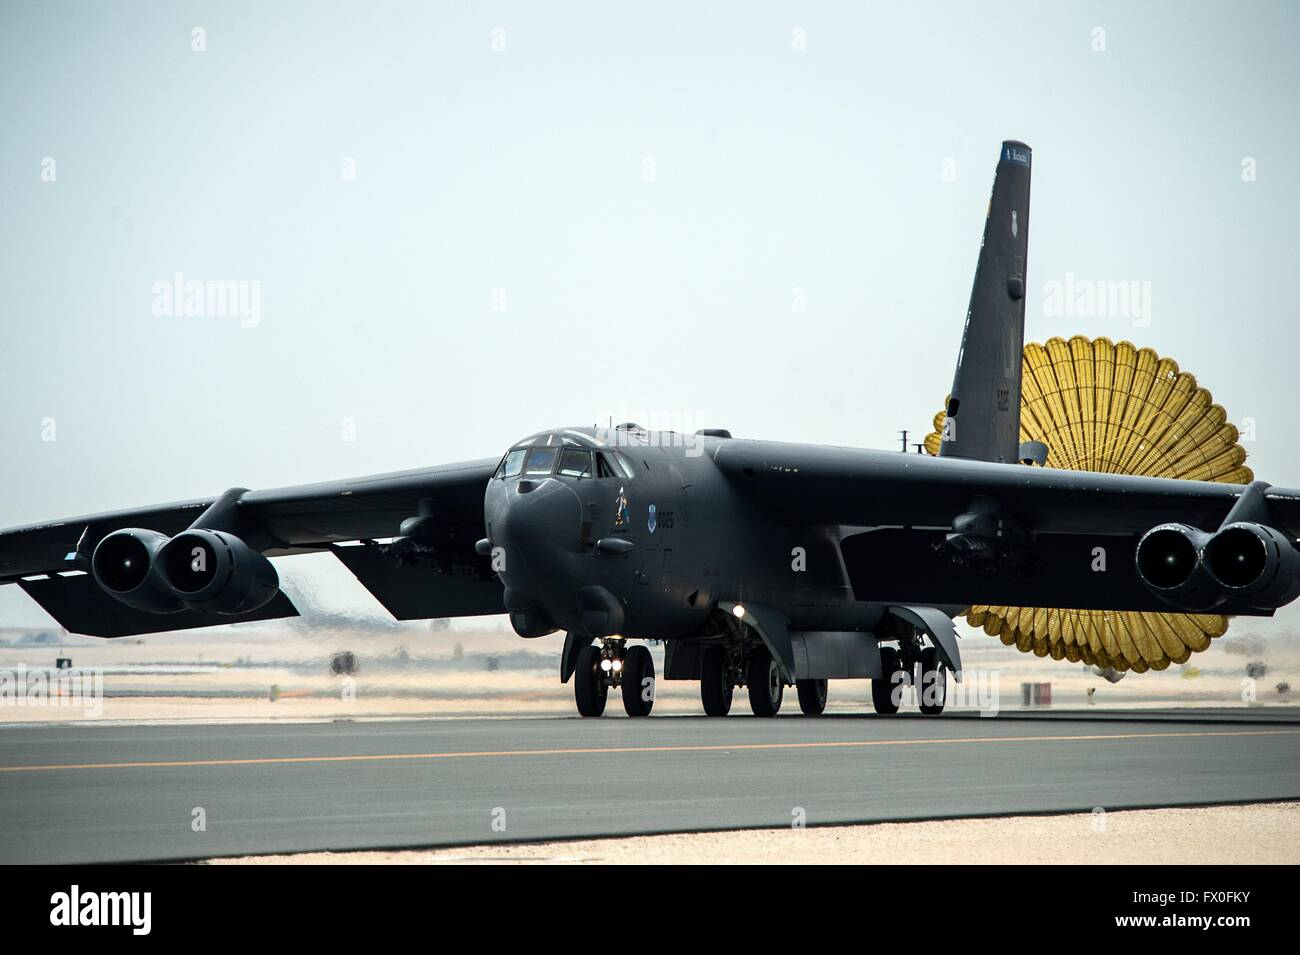 A U.S. Air Force B-52H Stratofortress strategic bomber lands at Al Udeid Air Base April 9, 2016 in Qatar. The aircraft - Stock Image